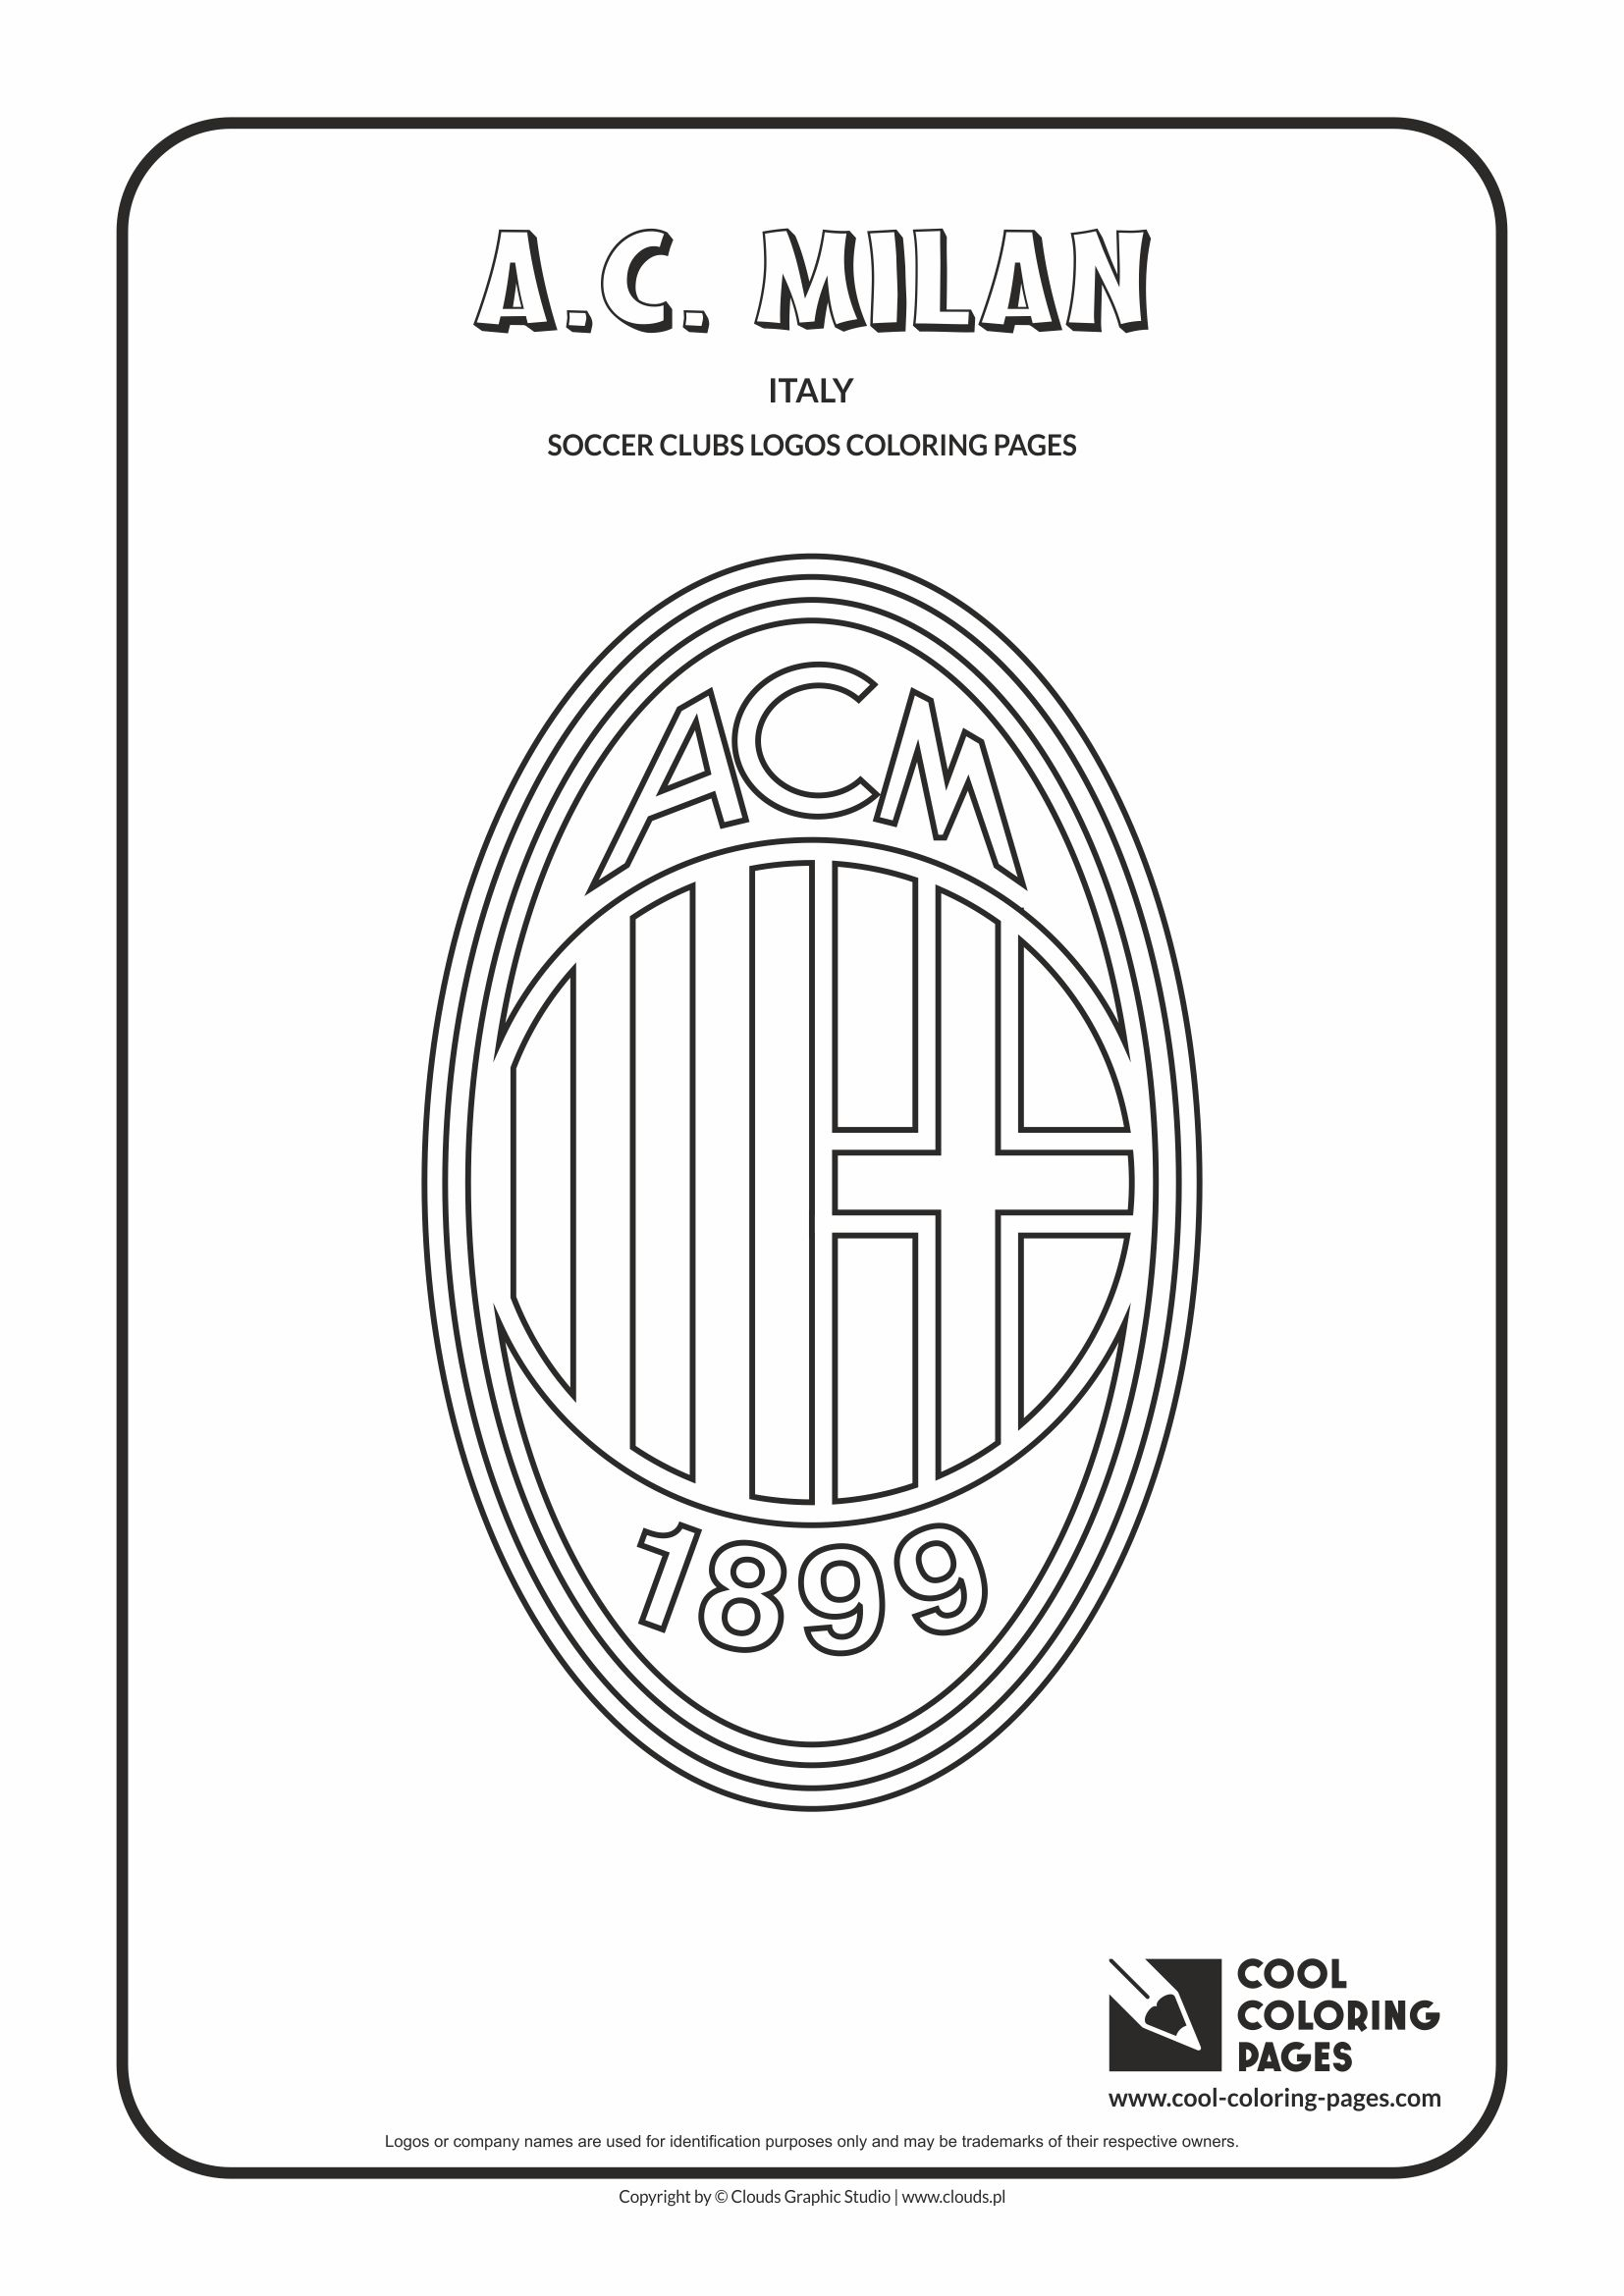 Cool Coloring Pages Soccer Clubs Logos